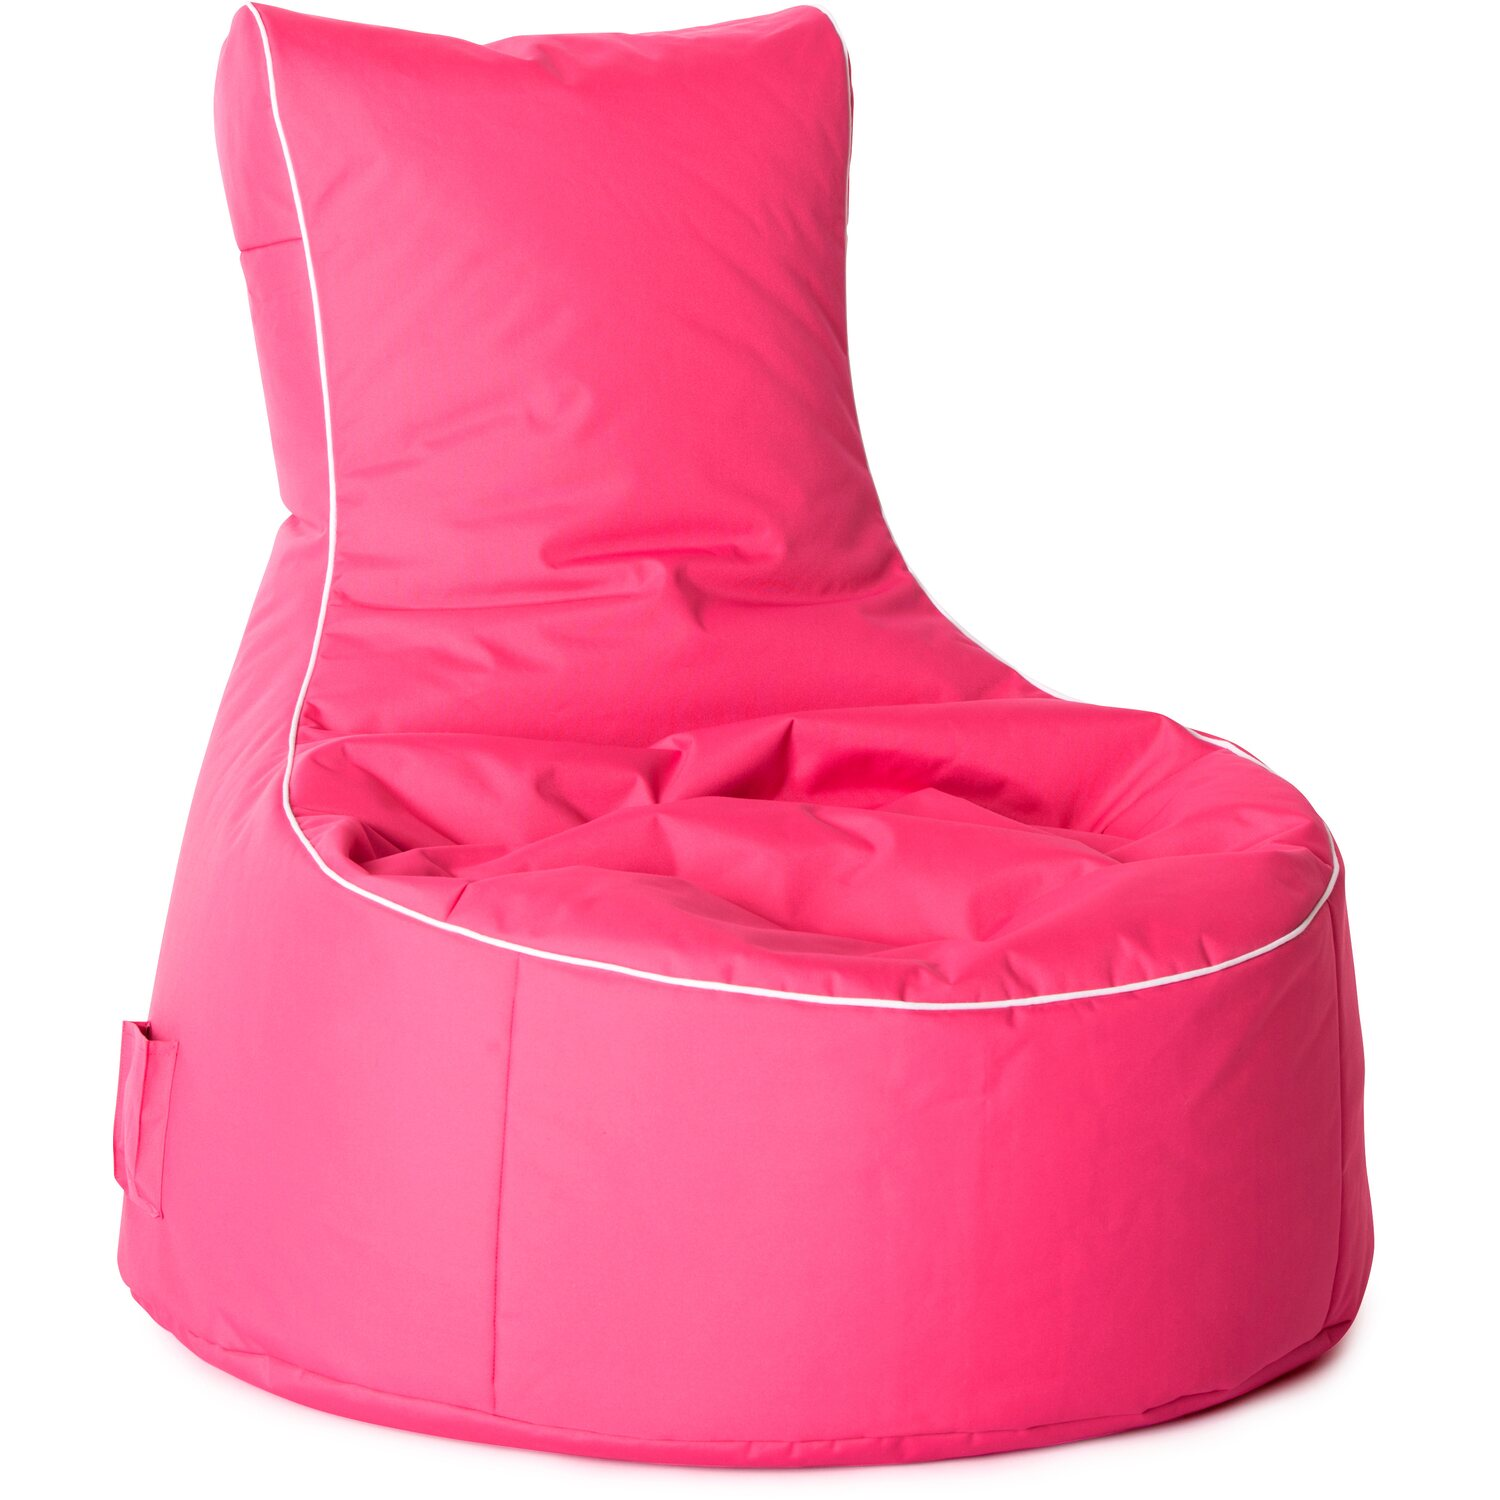 sitting point sitzsack swing scuba 300 l pink kaufen bei obi. Black Bedroom Furniture Sets. Home Design Ideas